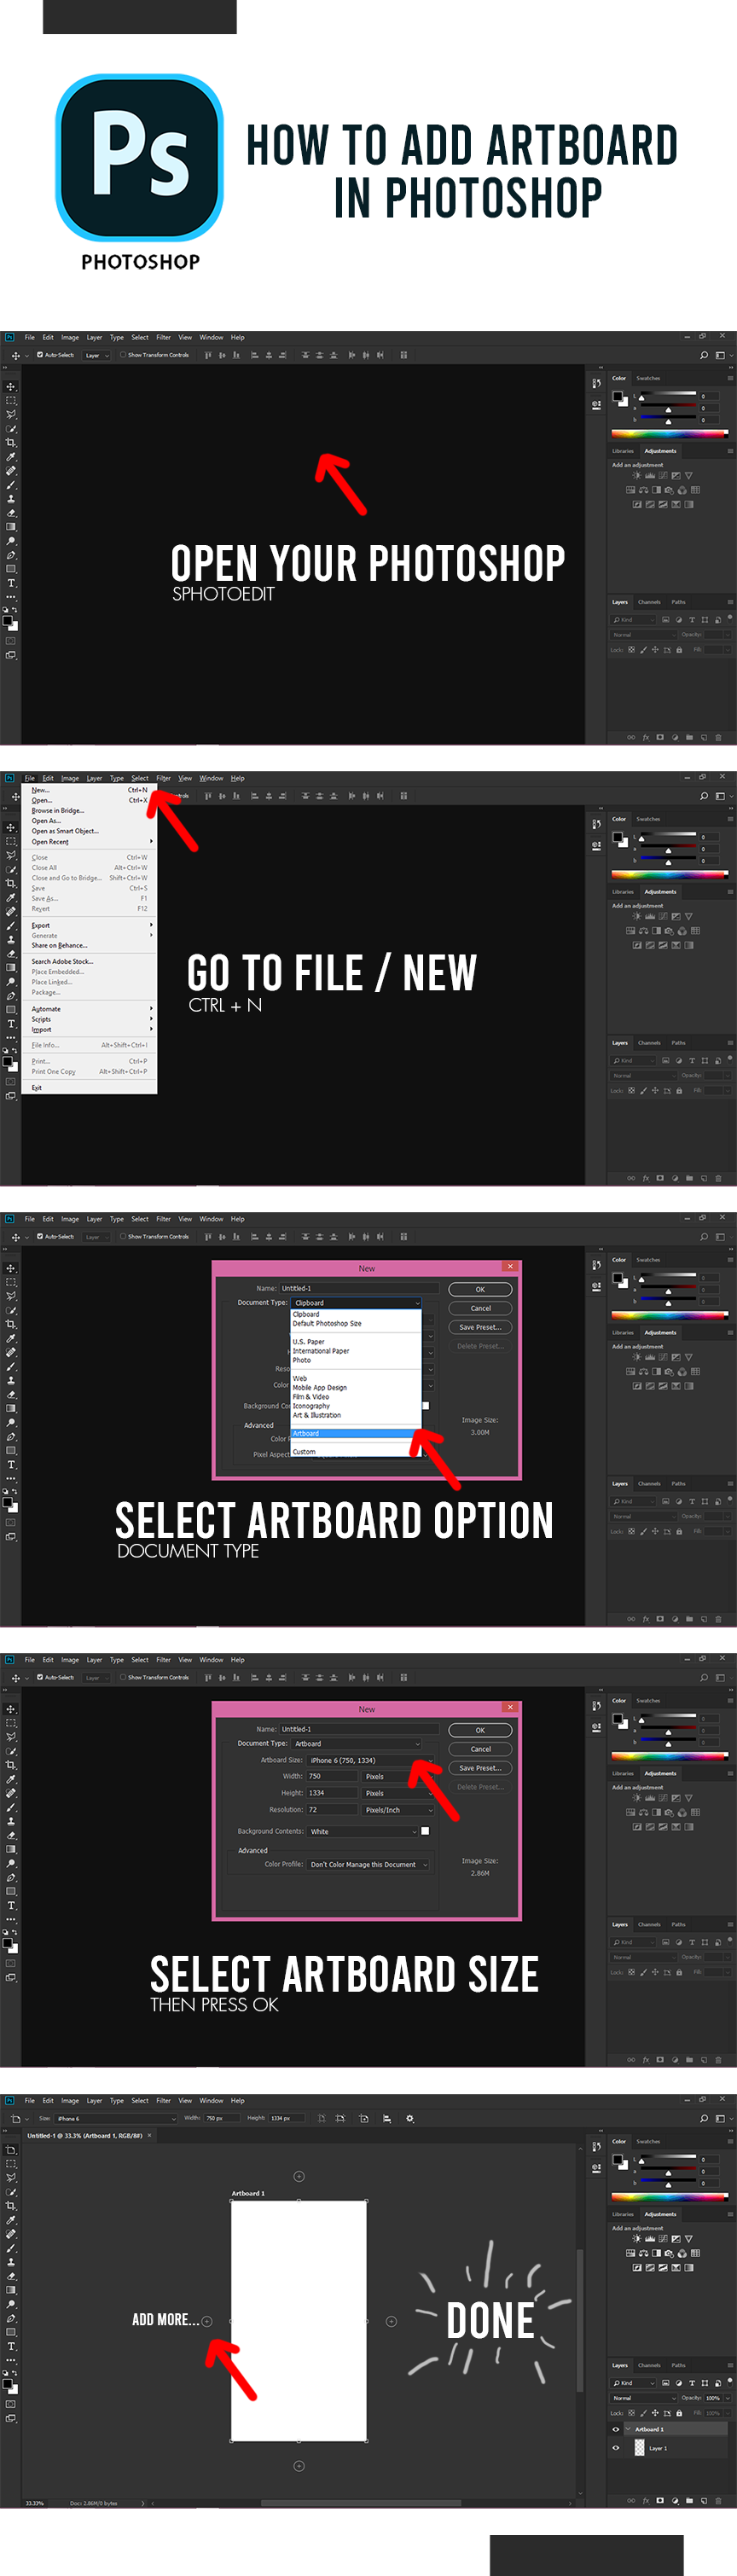 How To Add Artboard In Adobe Photoshop In 2020 Photoshop Learning Graphic Design Learn Photoshop